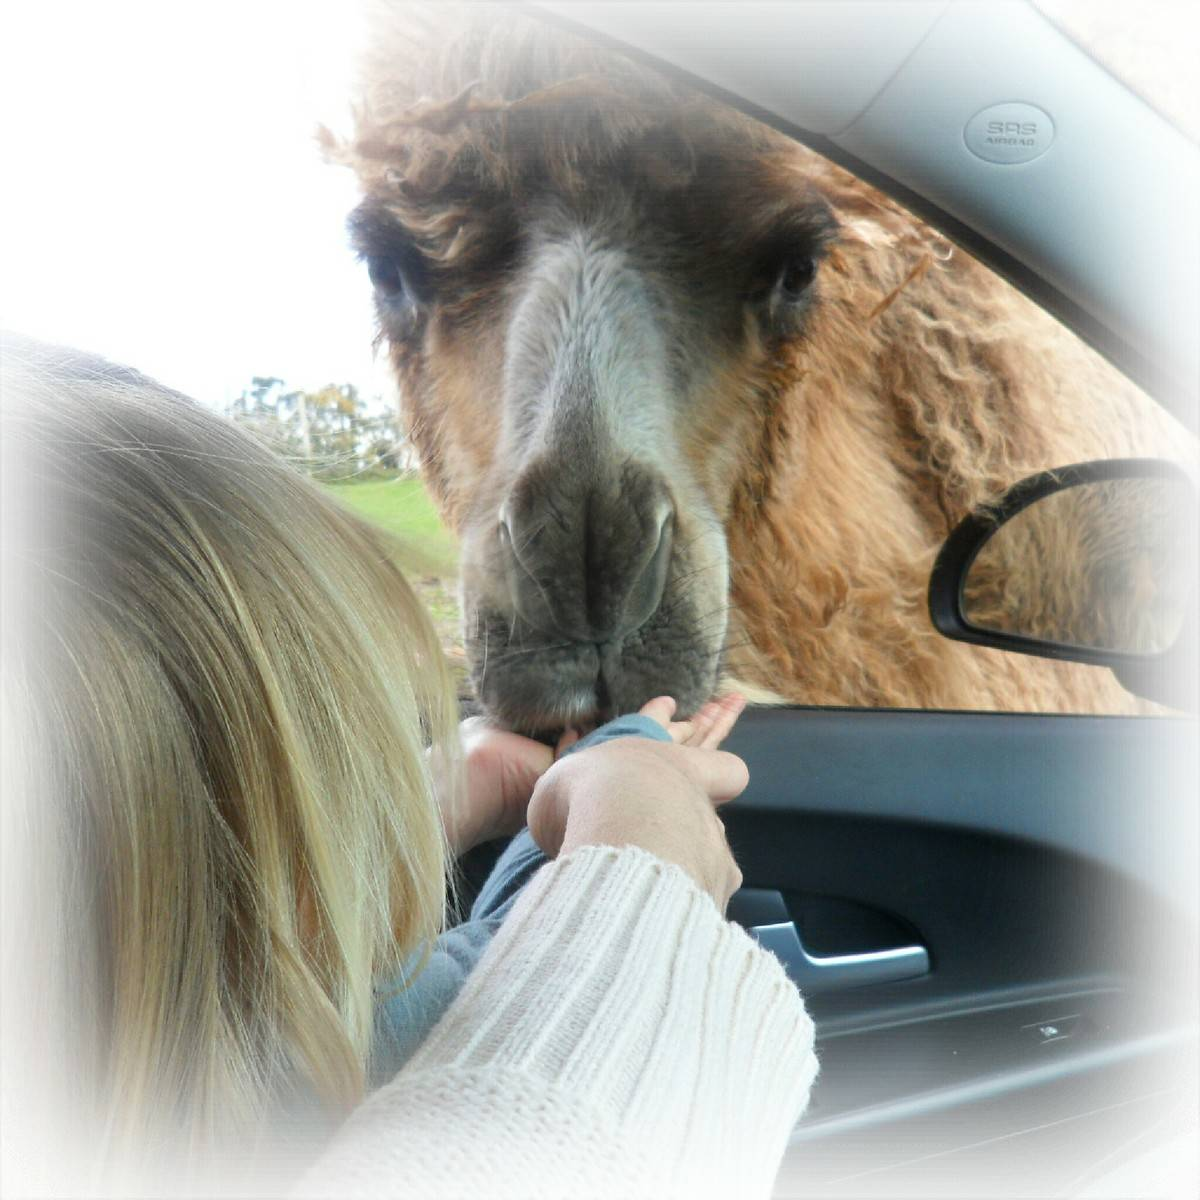 West Midlands Safari Park camel poking its head into a car to be fed by a little girl